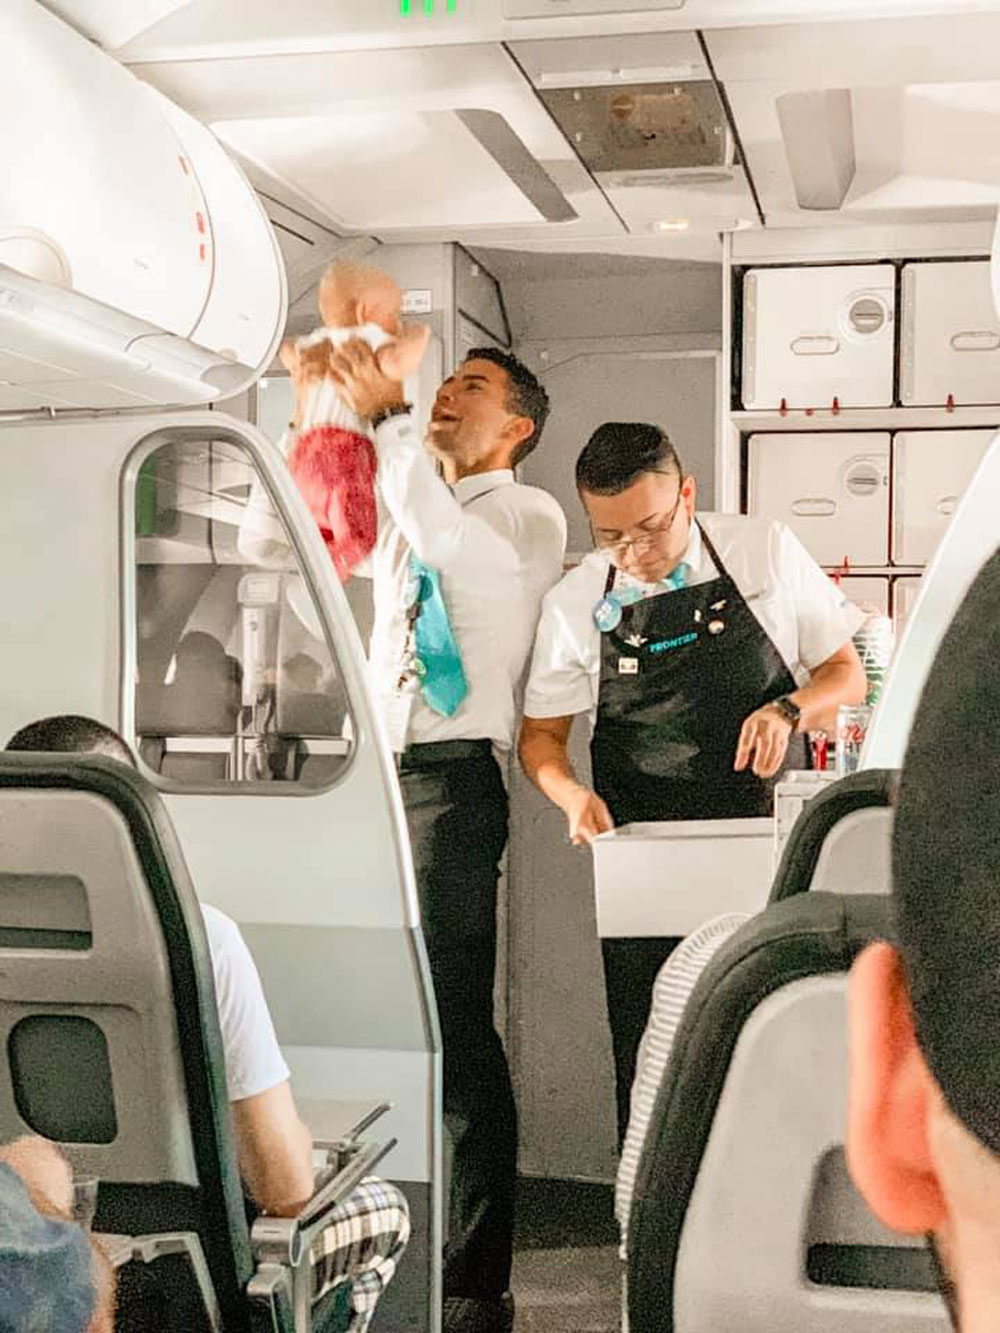 flight attendant comforted a woman's crying baby